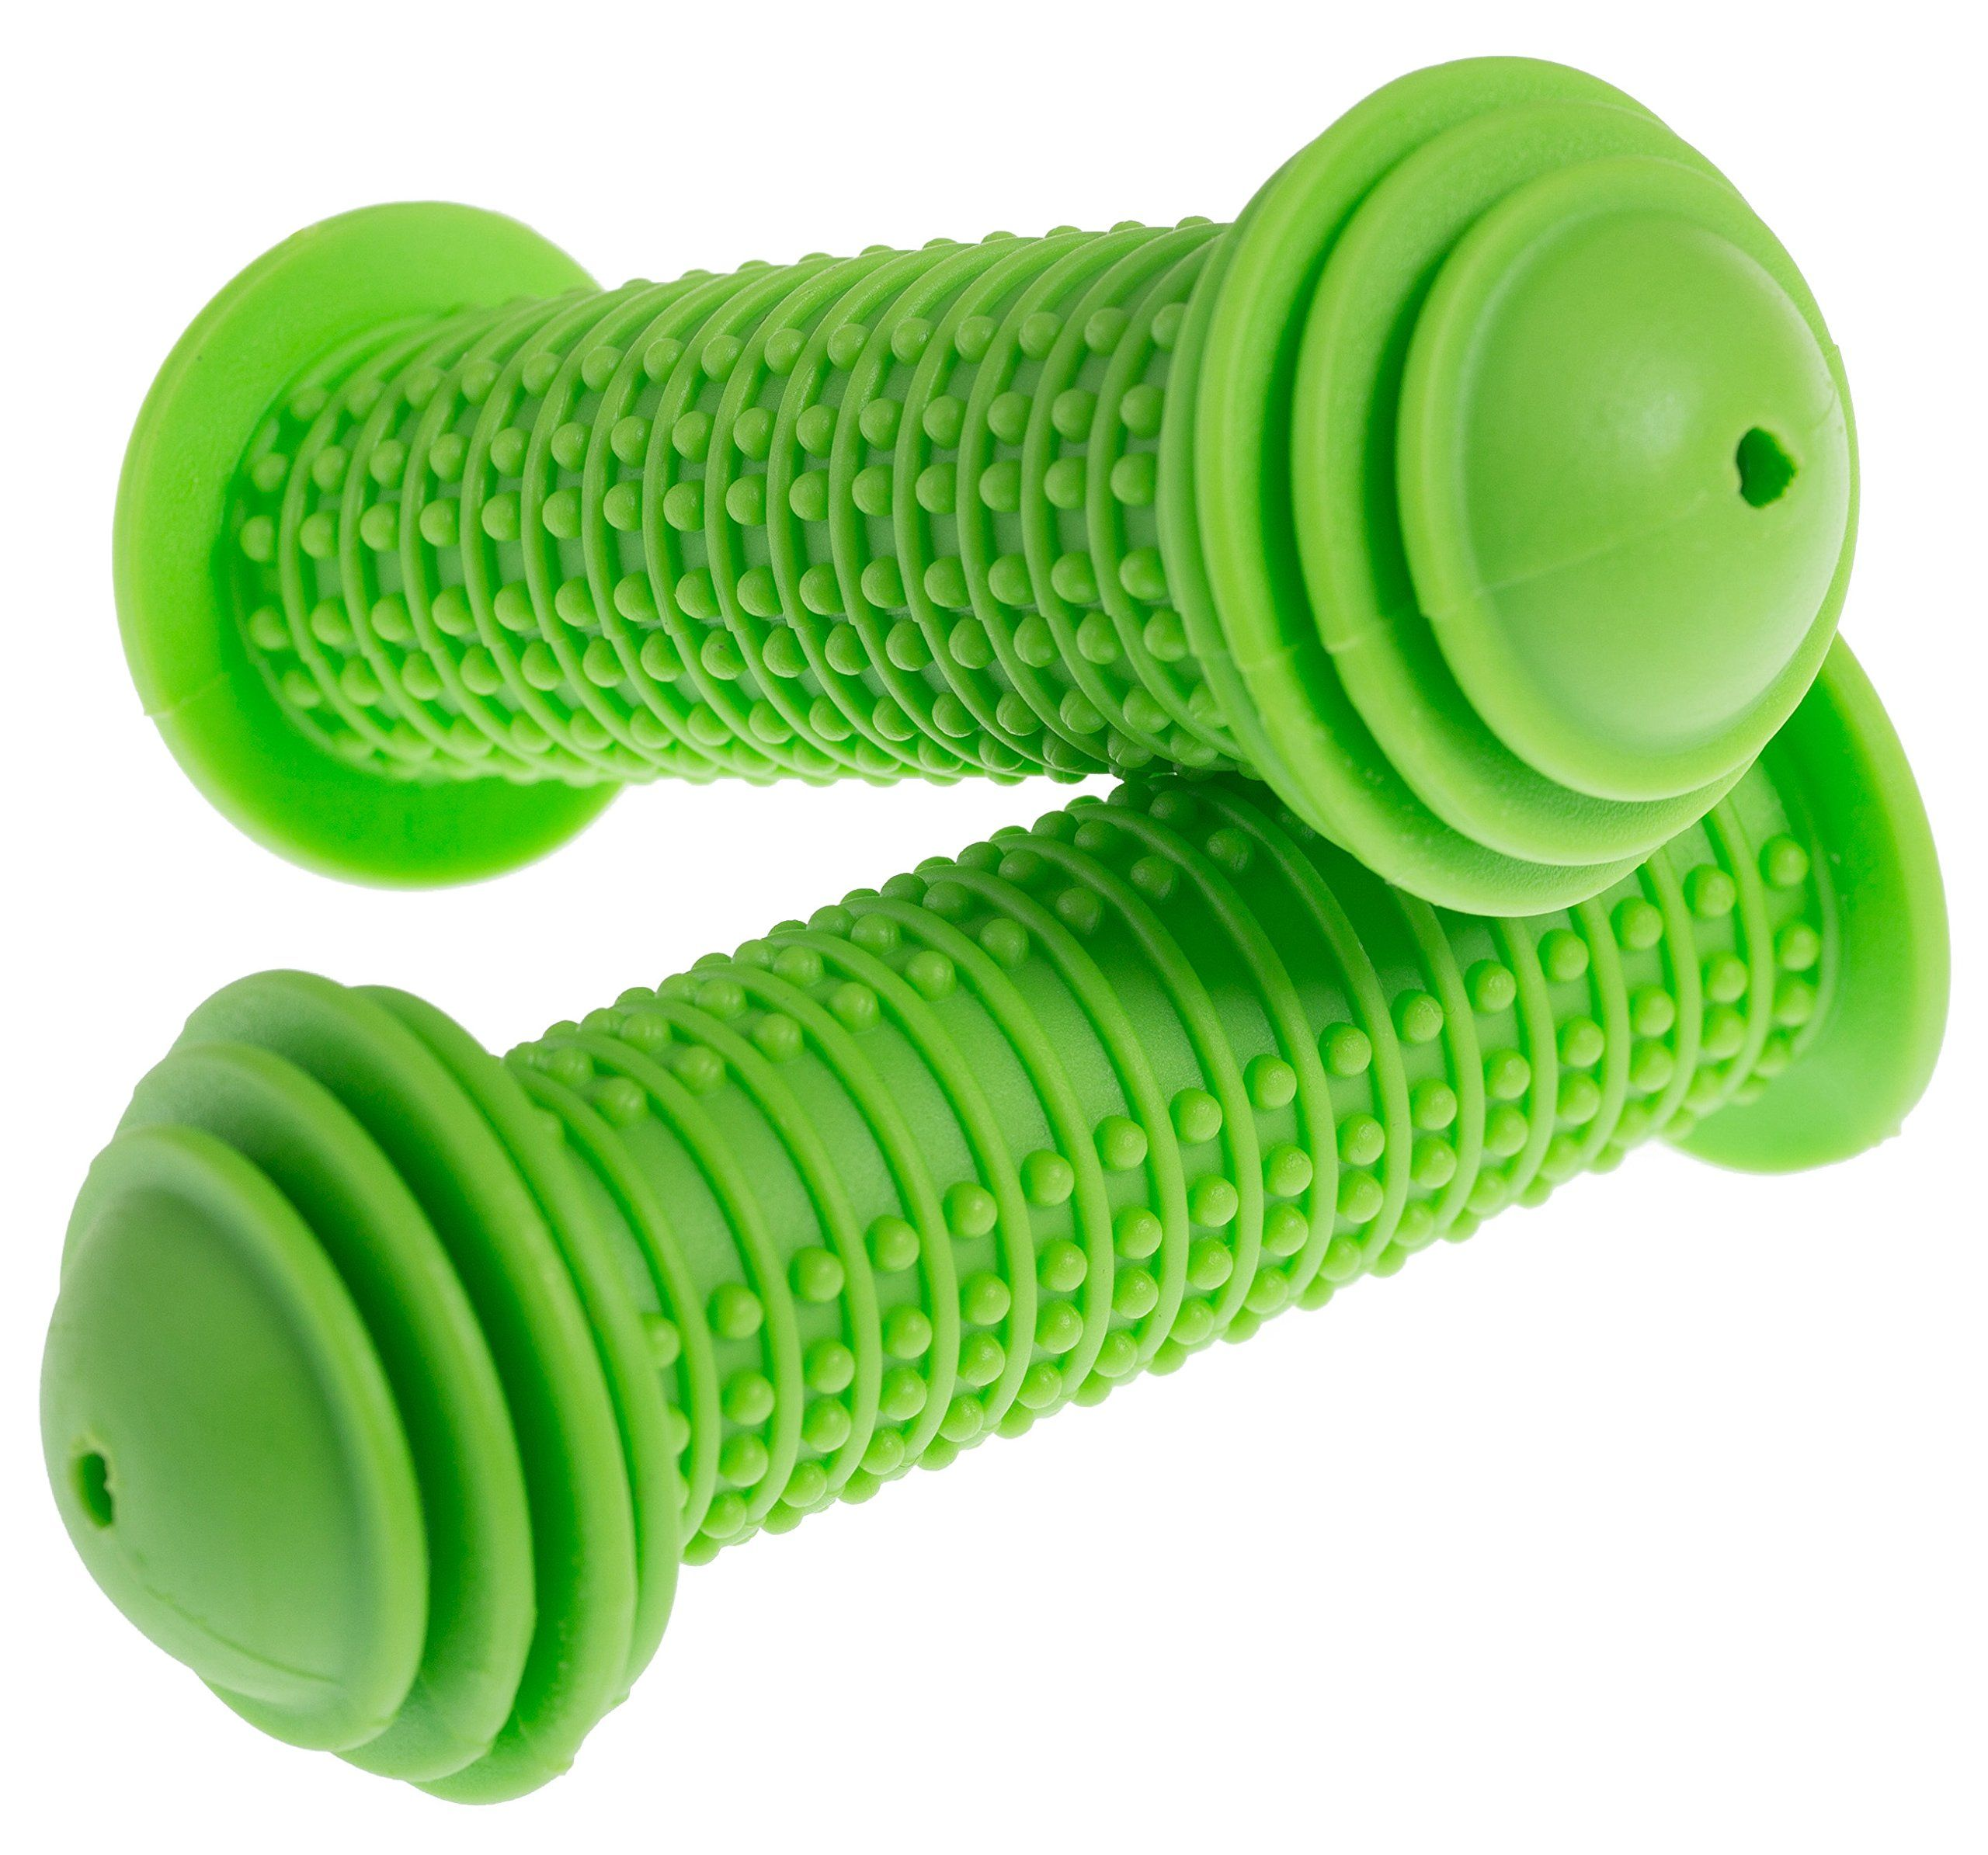 PROMETHEUS Kids Bike Grips 1 Pair in green Bicycle Handlebar